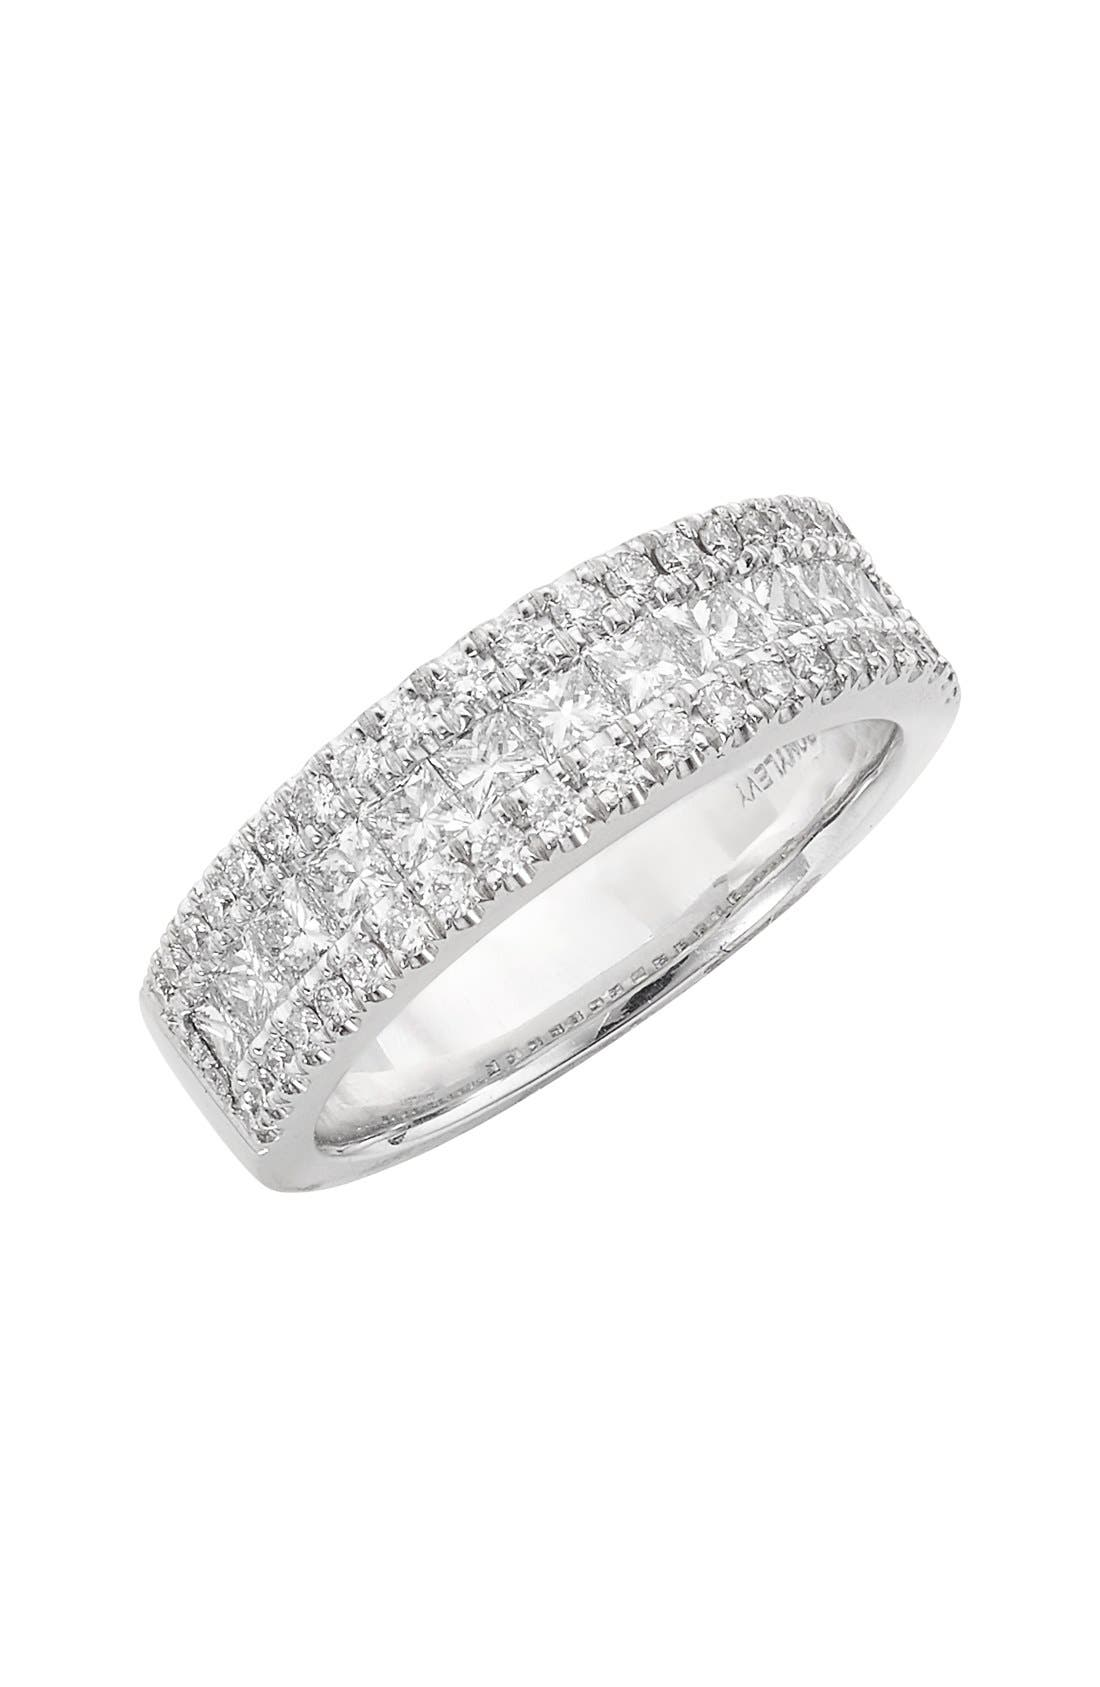 'Liora' Princess Diamond Ring,                             Main thumbnail 1, color,                             White Gold